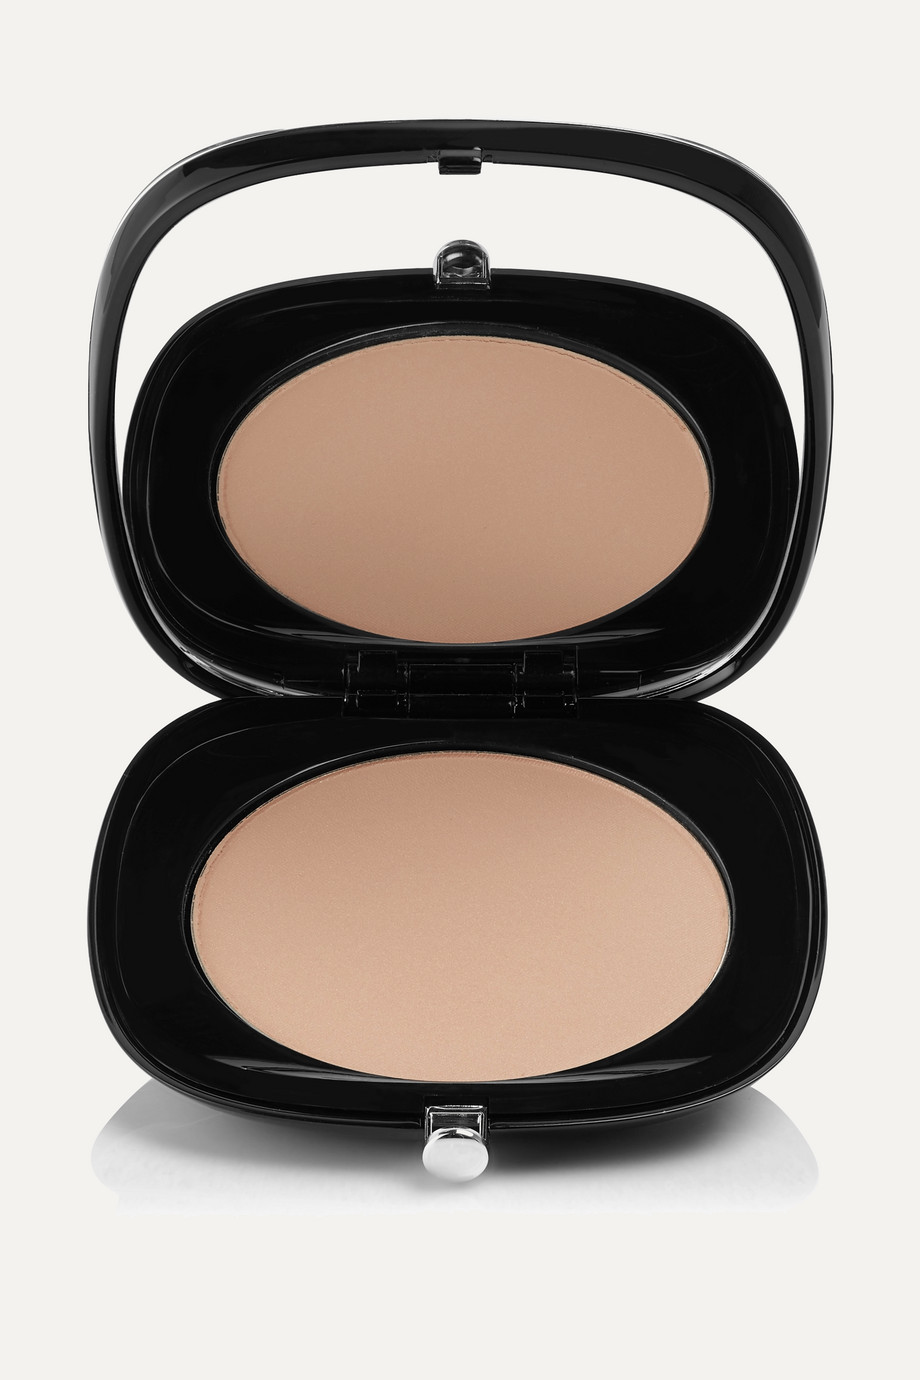 Marc Jacobs Beauty Accomplice Instant Blurring Beauty Powder - Ingenue